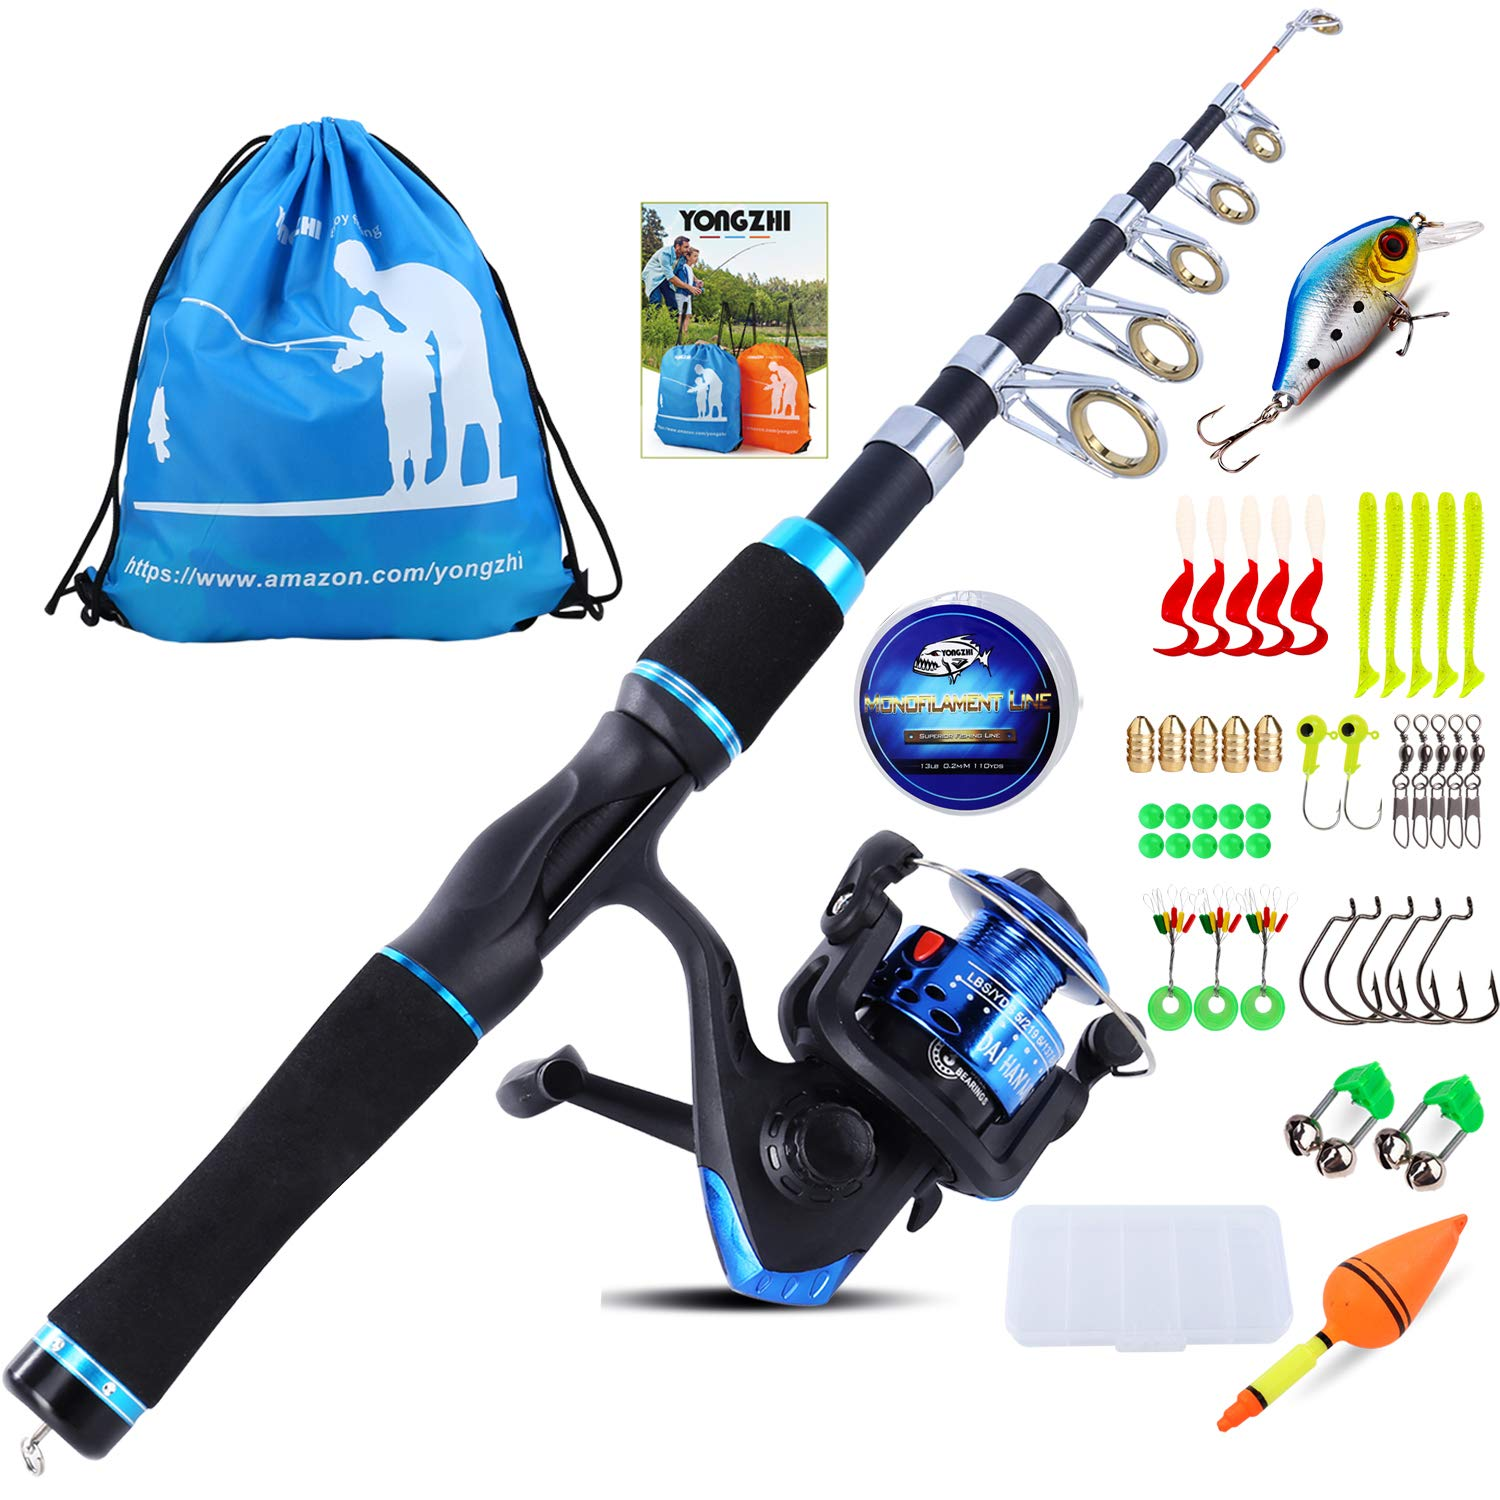 Top 10 Best Kids Fishing Poles 2020 Reviews & Buyer's Guide 5